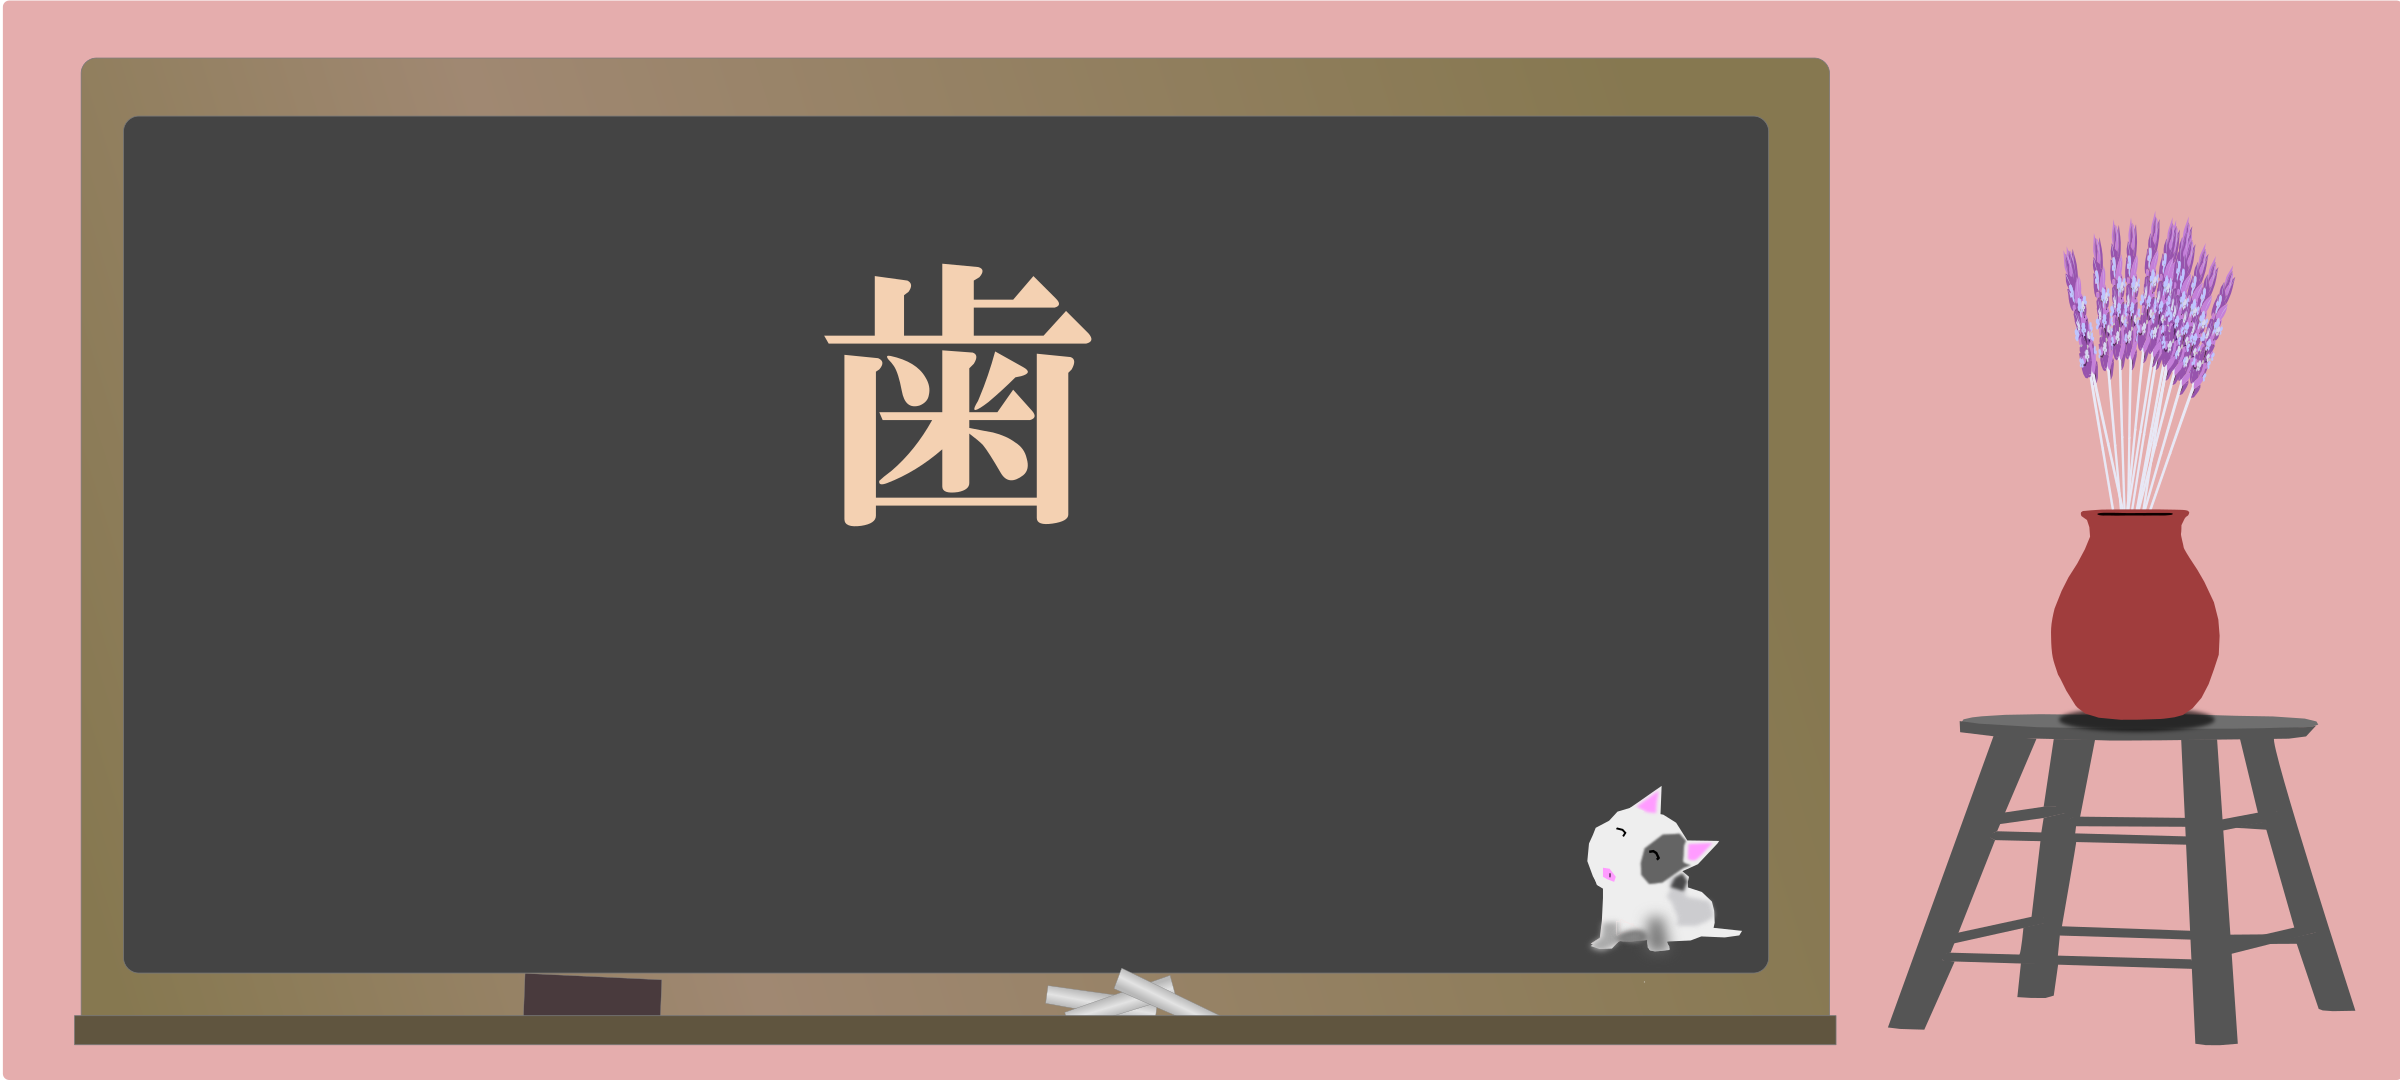 today's kanji-71-ha by yamachem